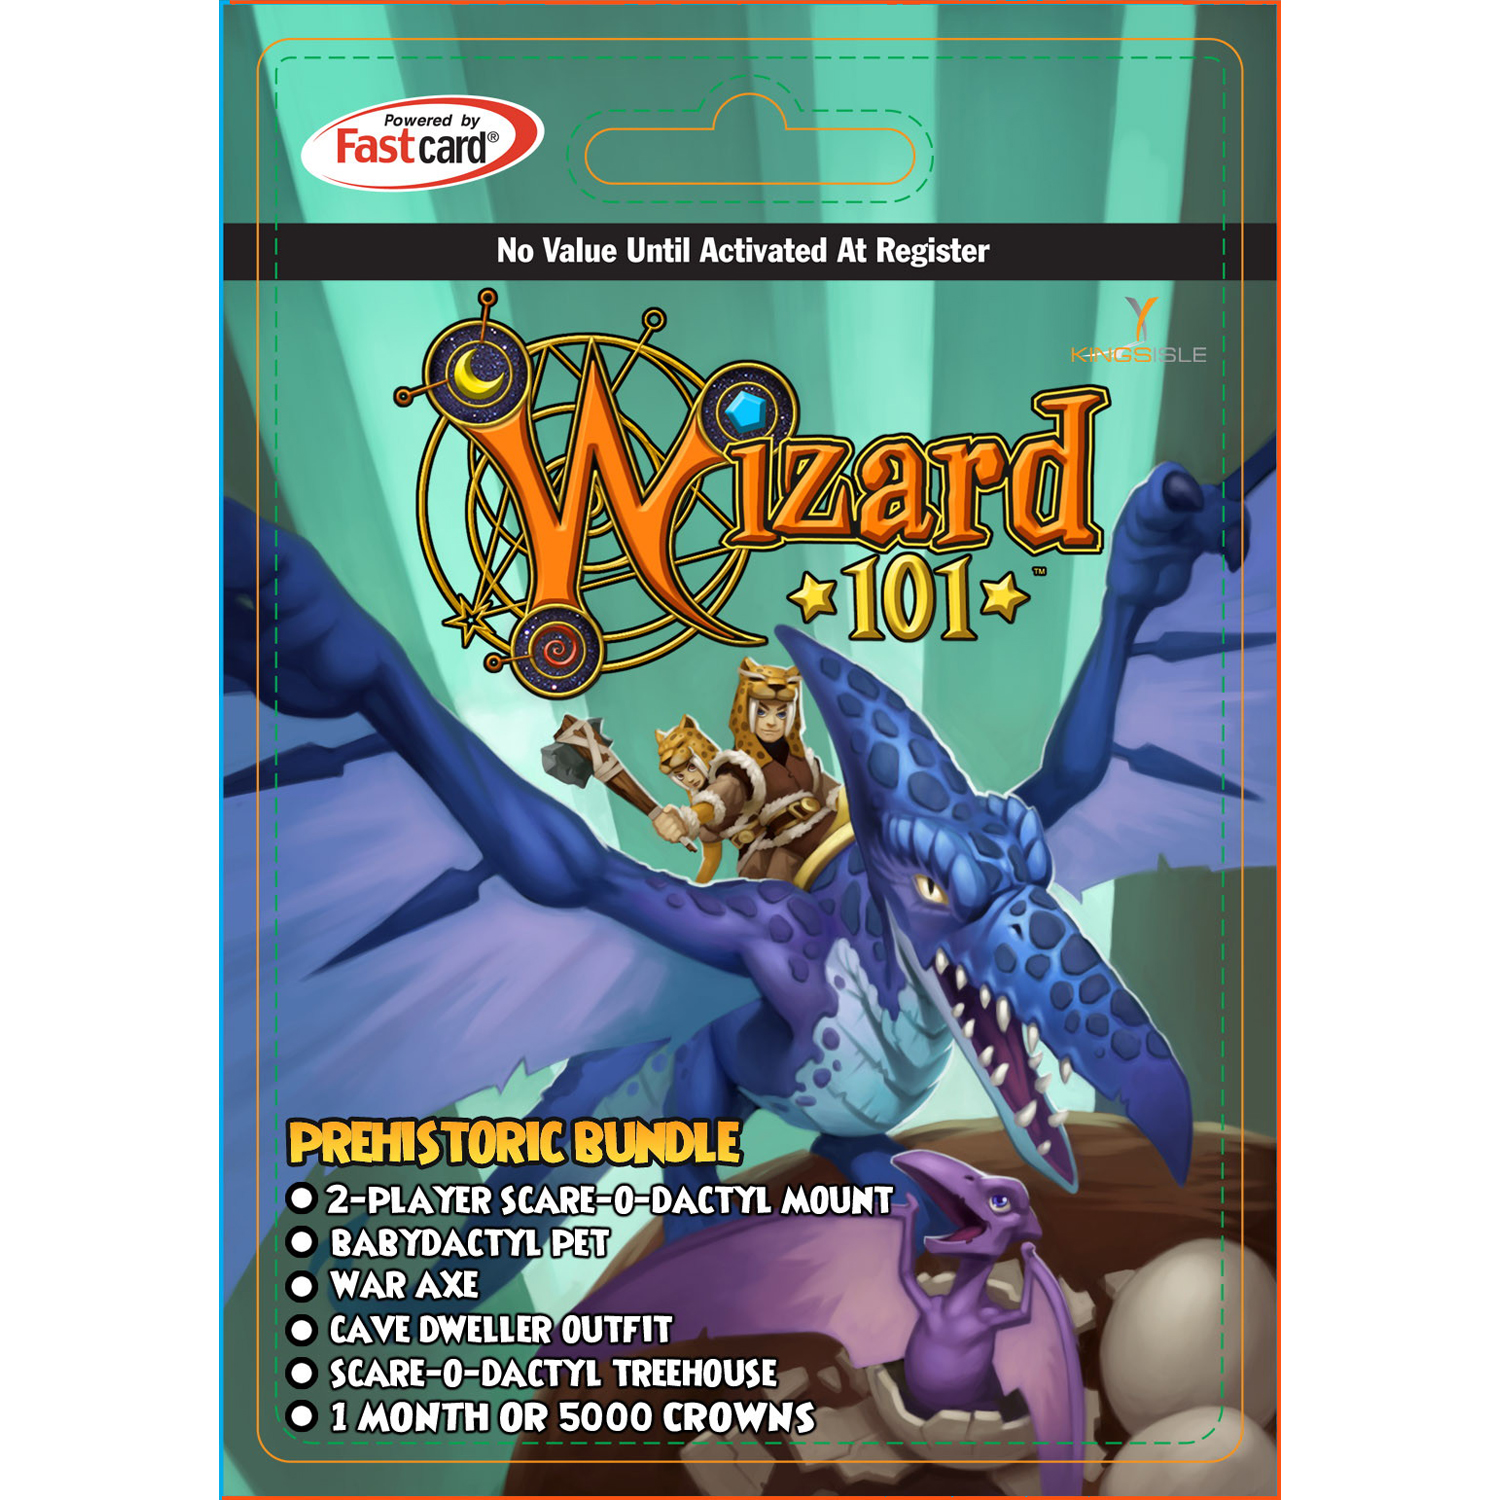 KingsIsle Wizard101 Prehistoric Bundle $29 Card